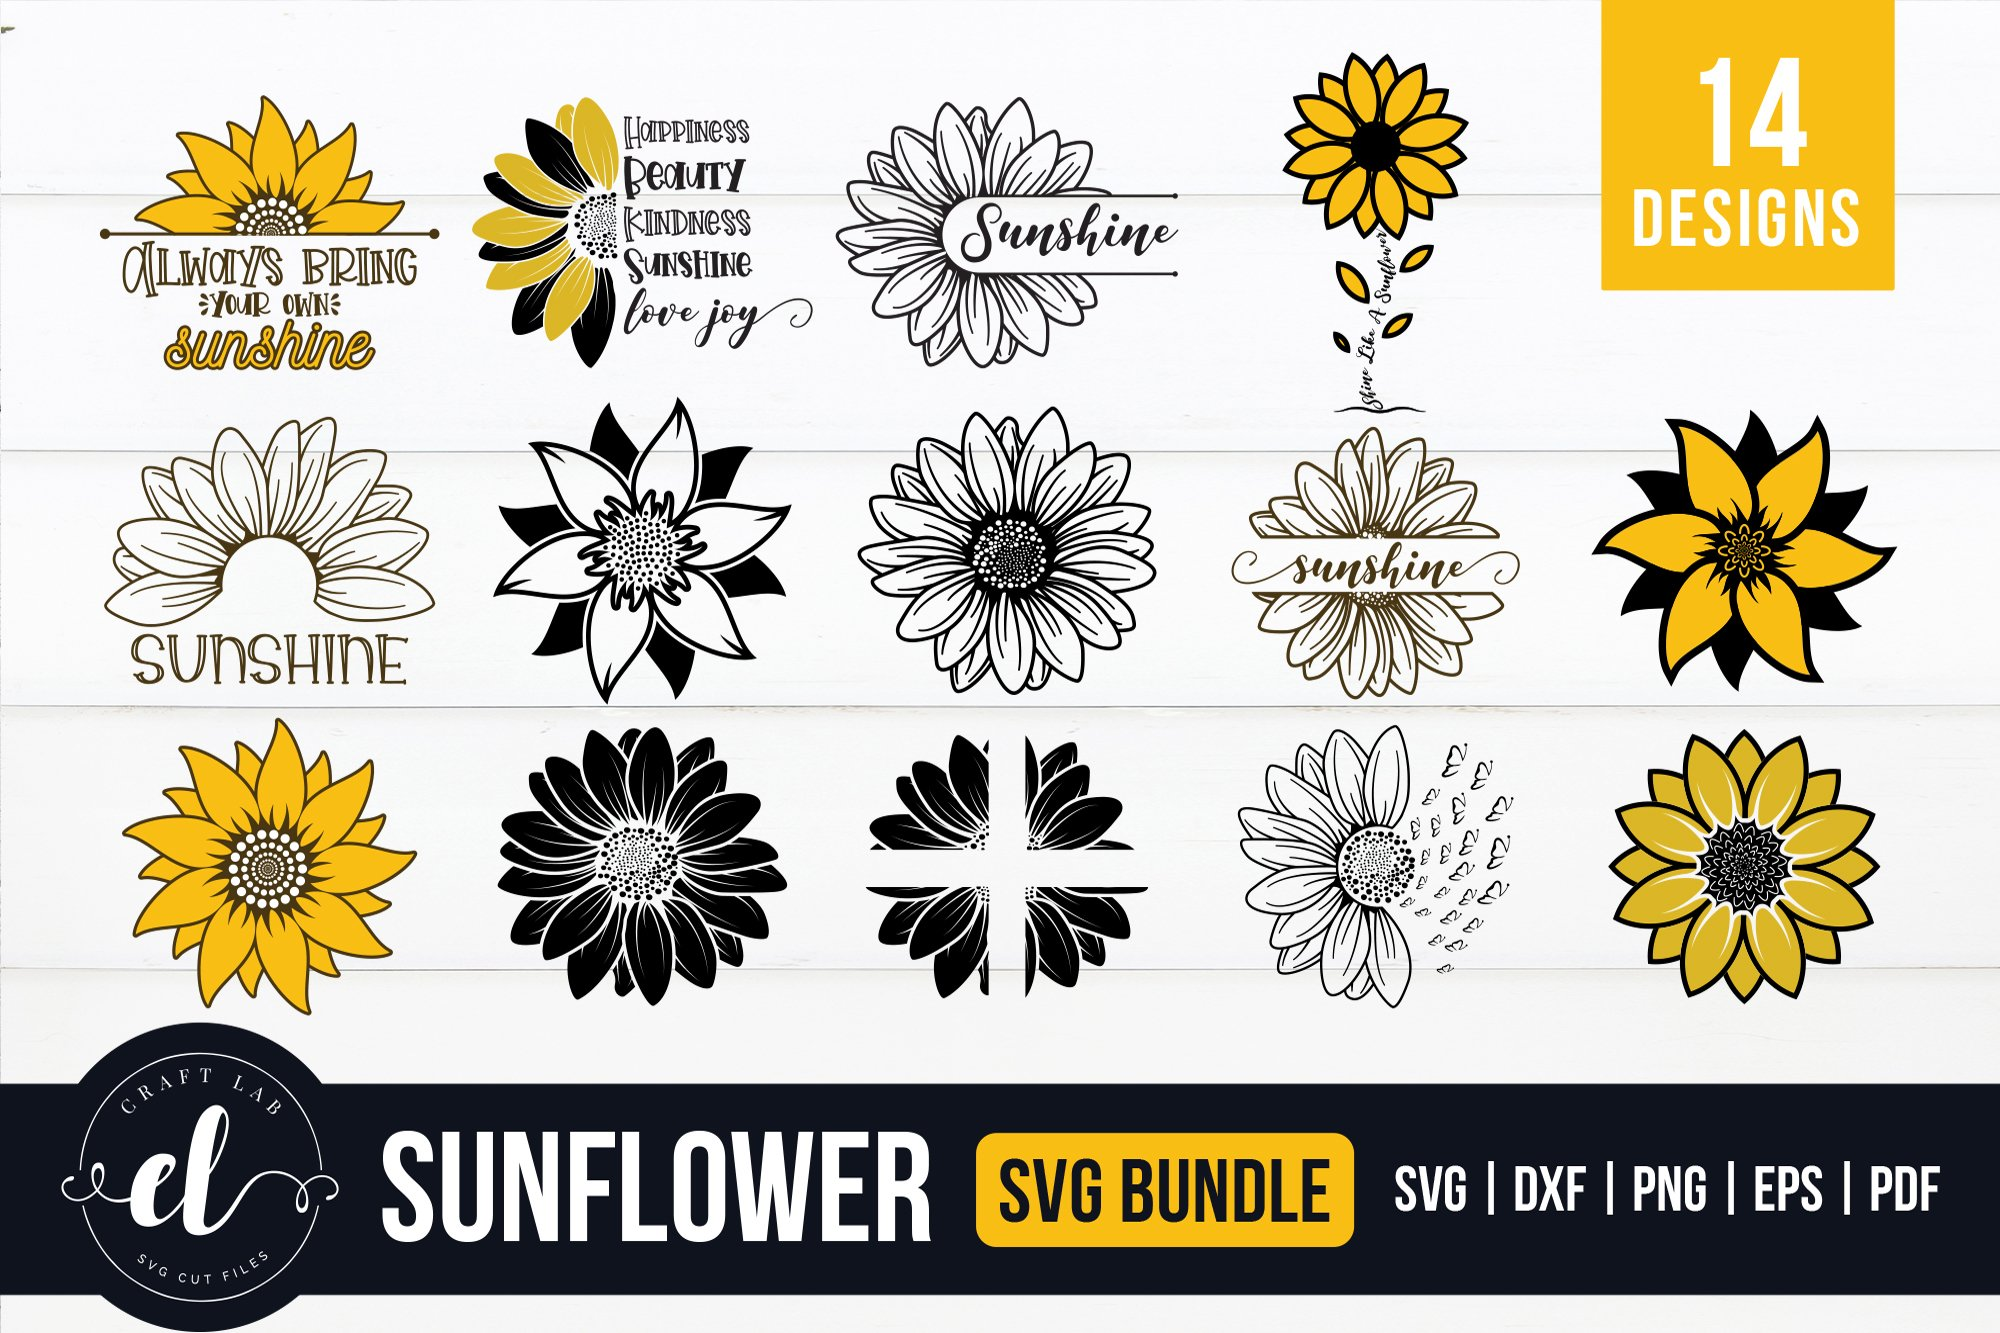 Sunflower SVG, Sunflower SVG Bundle, Sunflower SVG Cut Files example image 1